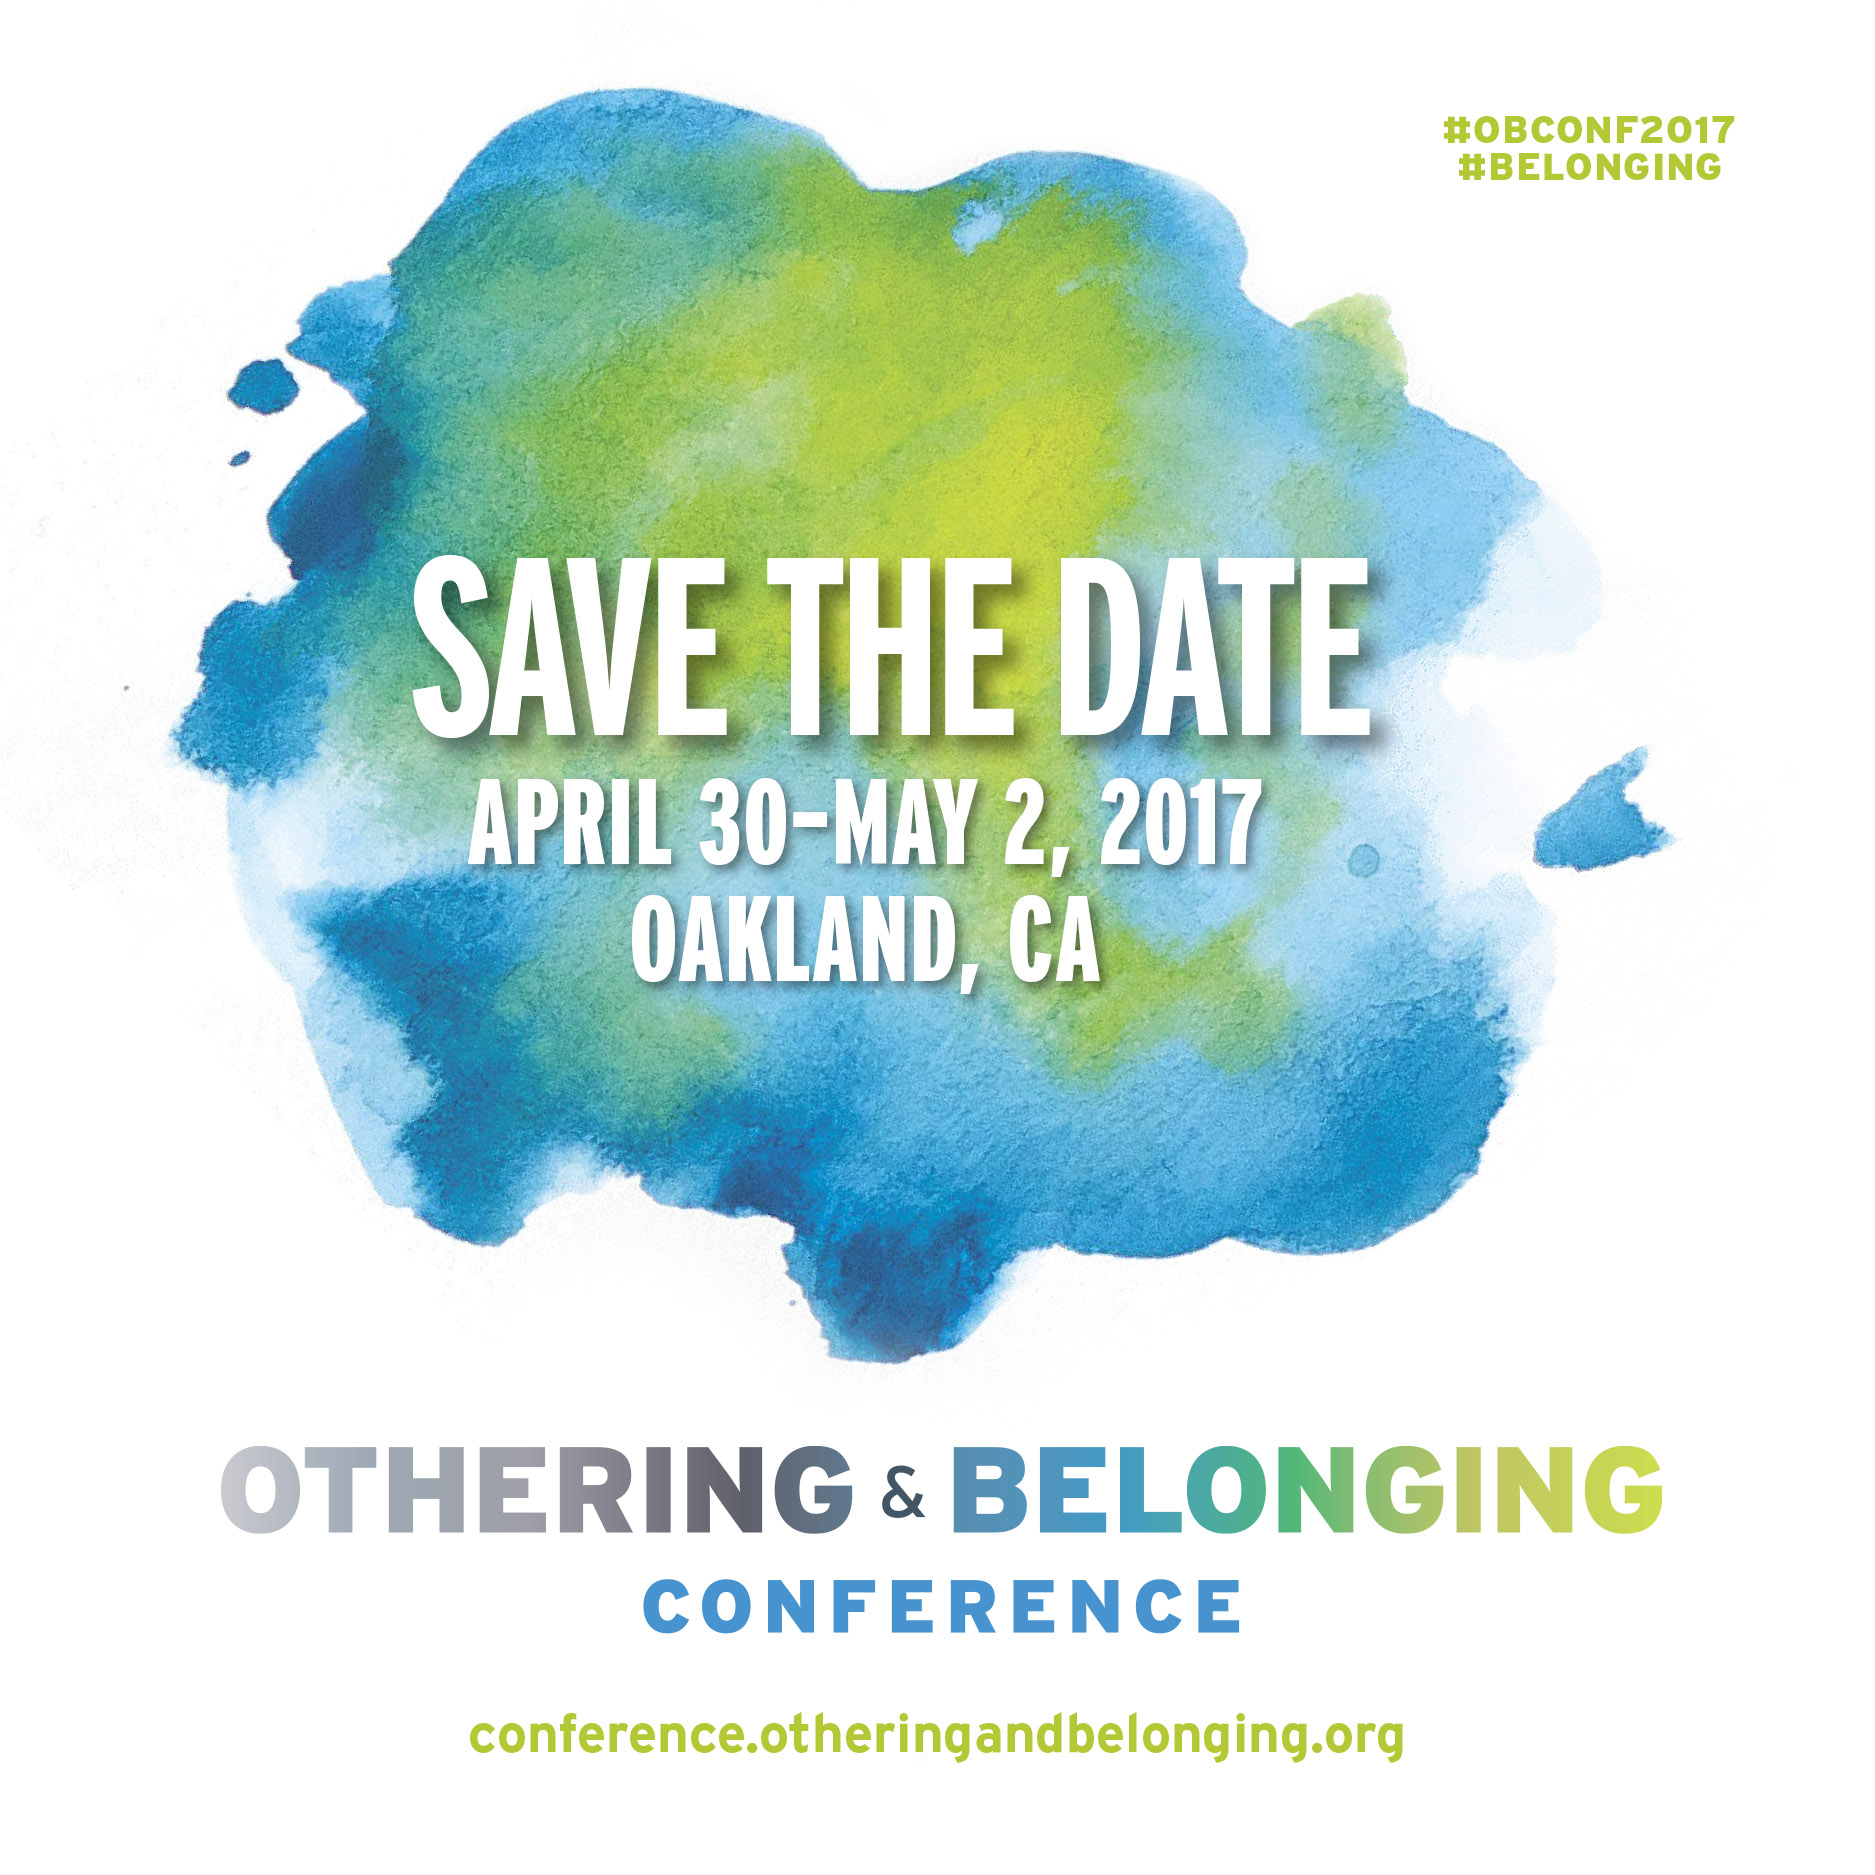 2017 Othering and Belonging Conference Save the Date Announcement set on an irregular round blue and green watercolor